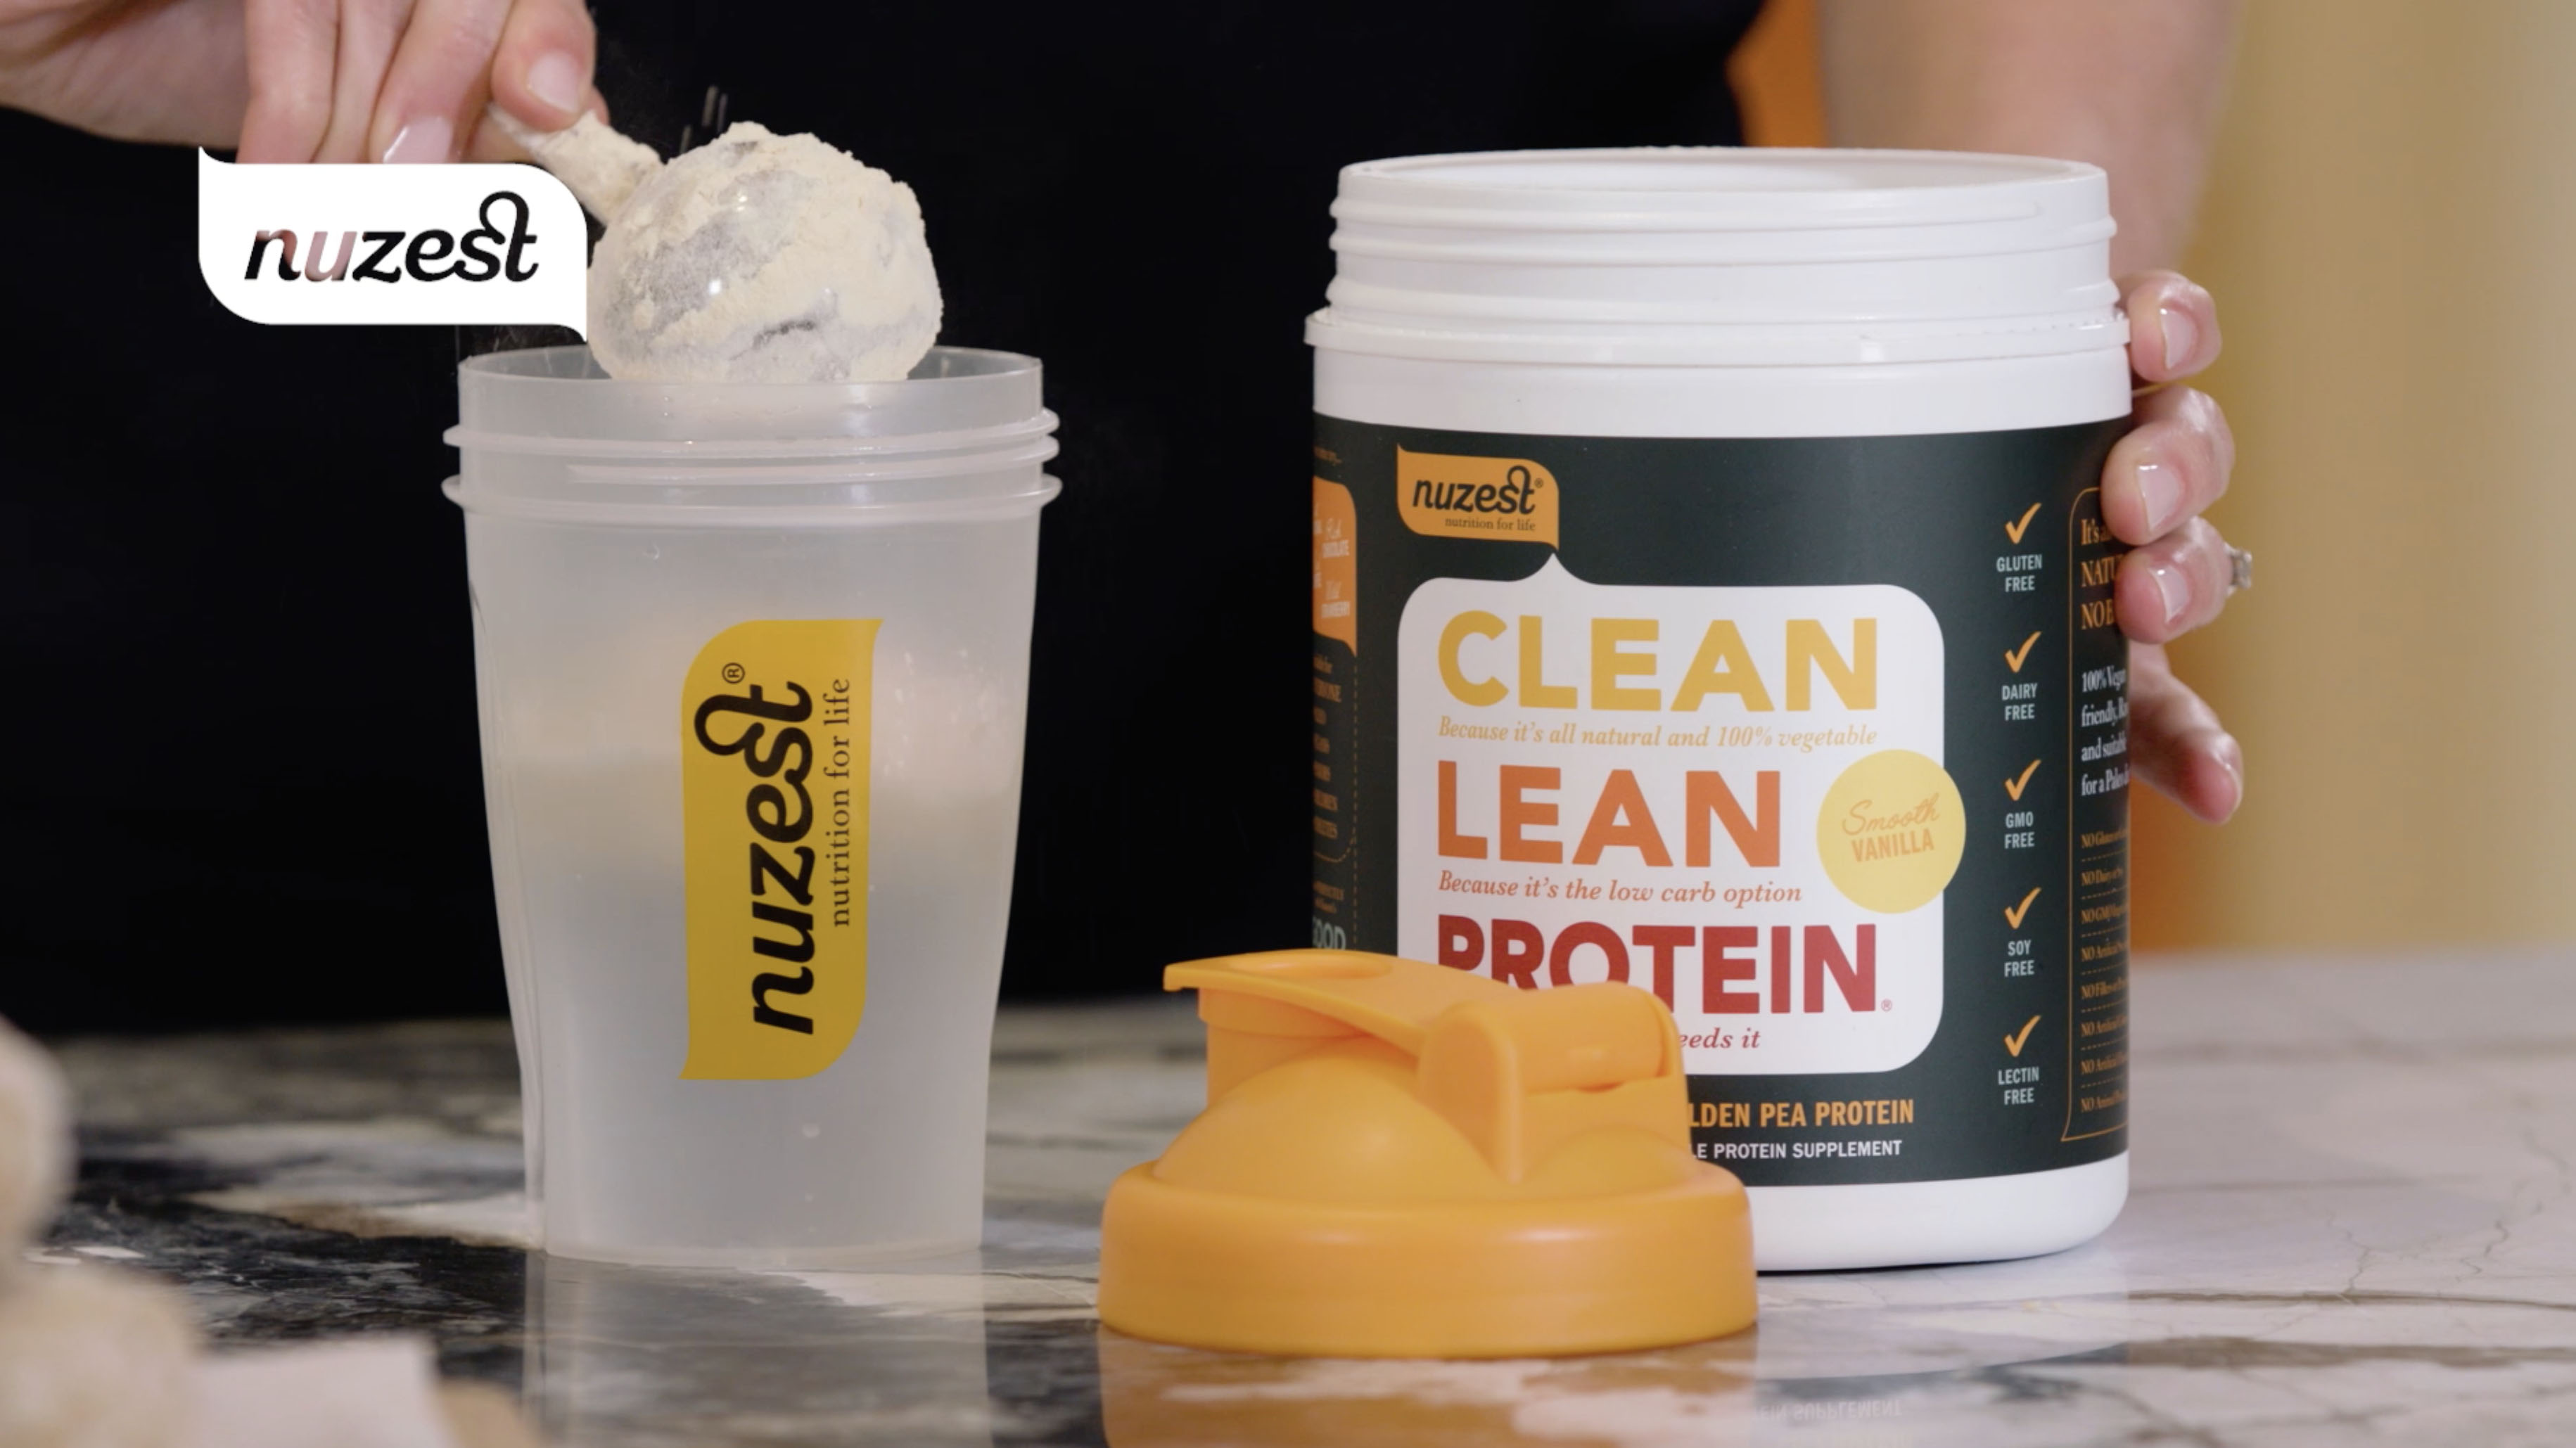 Clean Lean Protein Digestive Support Protein